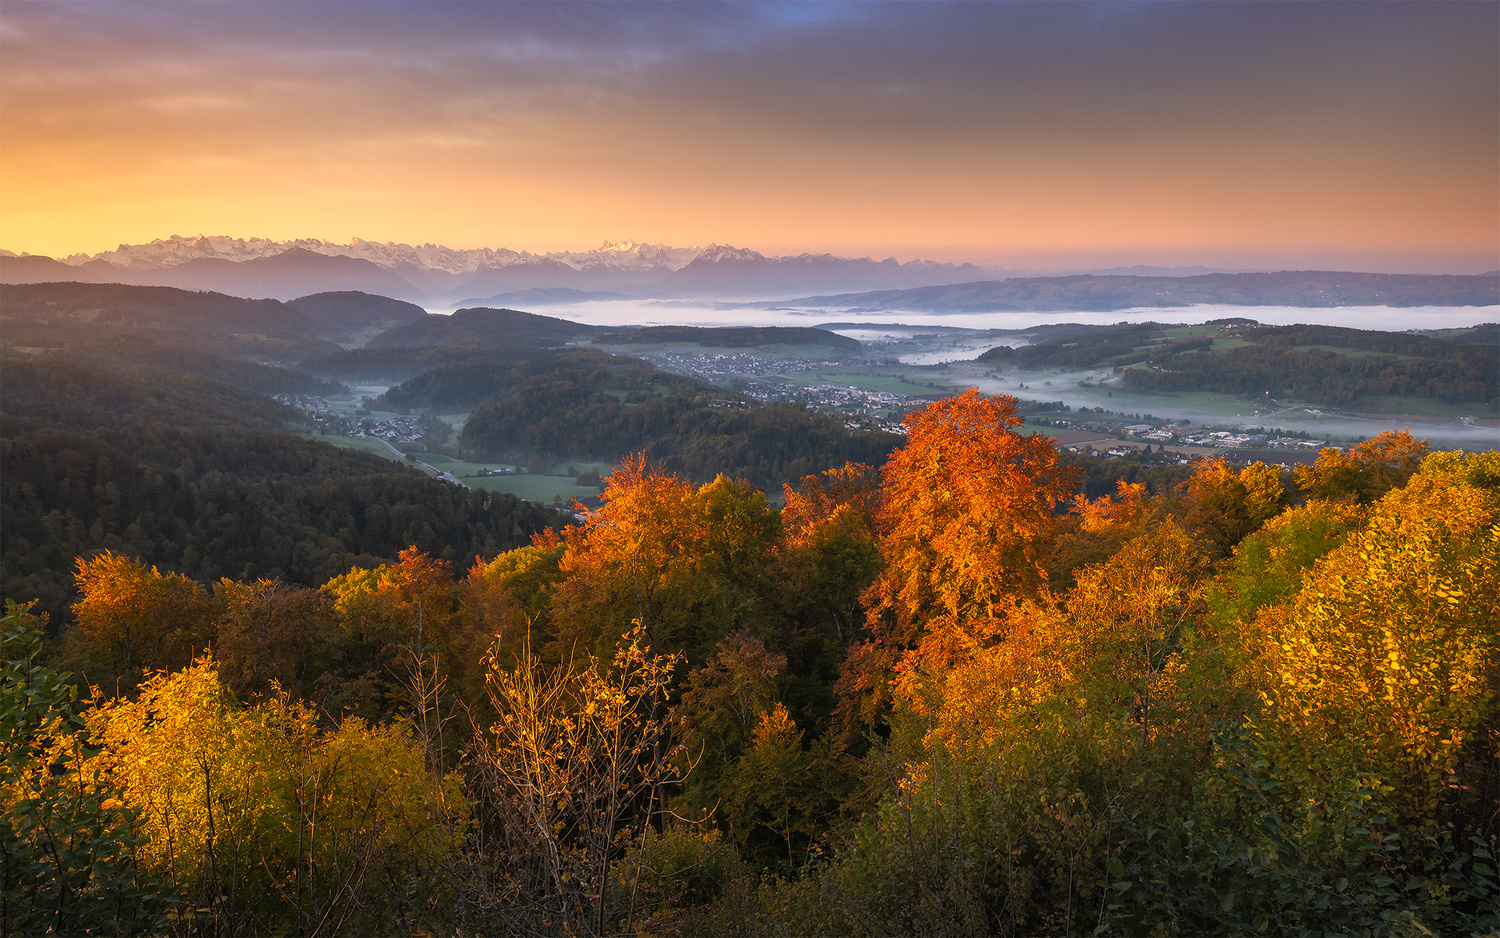 Autumn sunrise by Anton Galitch